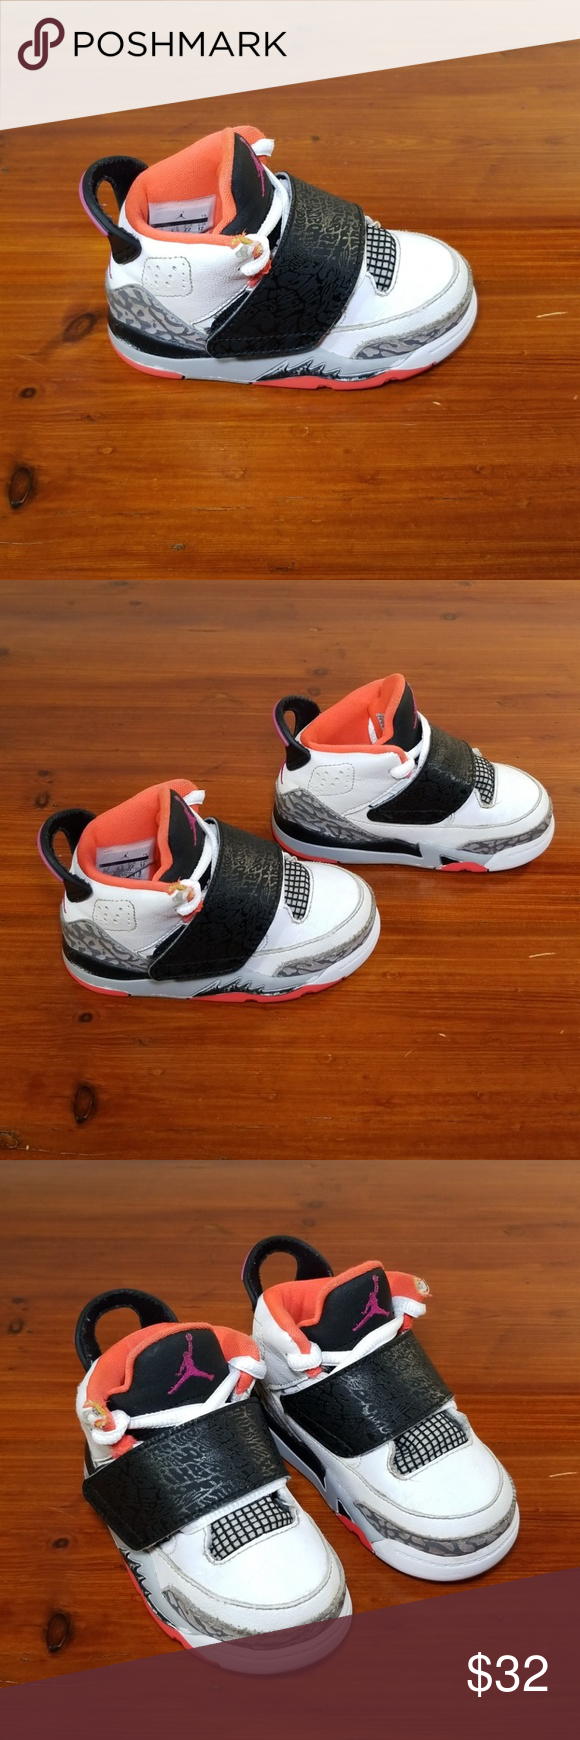 daa97f232bd Nike Air Jordan Son of Mars. Size 6C. Pre-owned, Still in Good Condition,  Some Wear. Offers Welcomed. Bundle 2 or More Items and Save ...